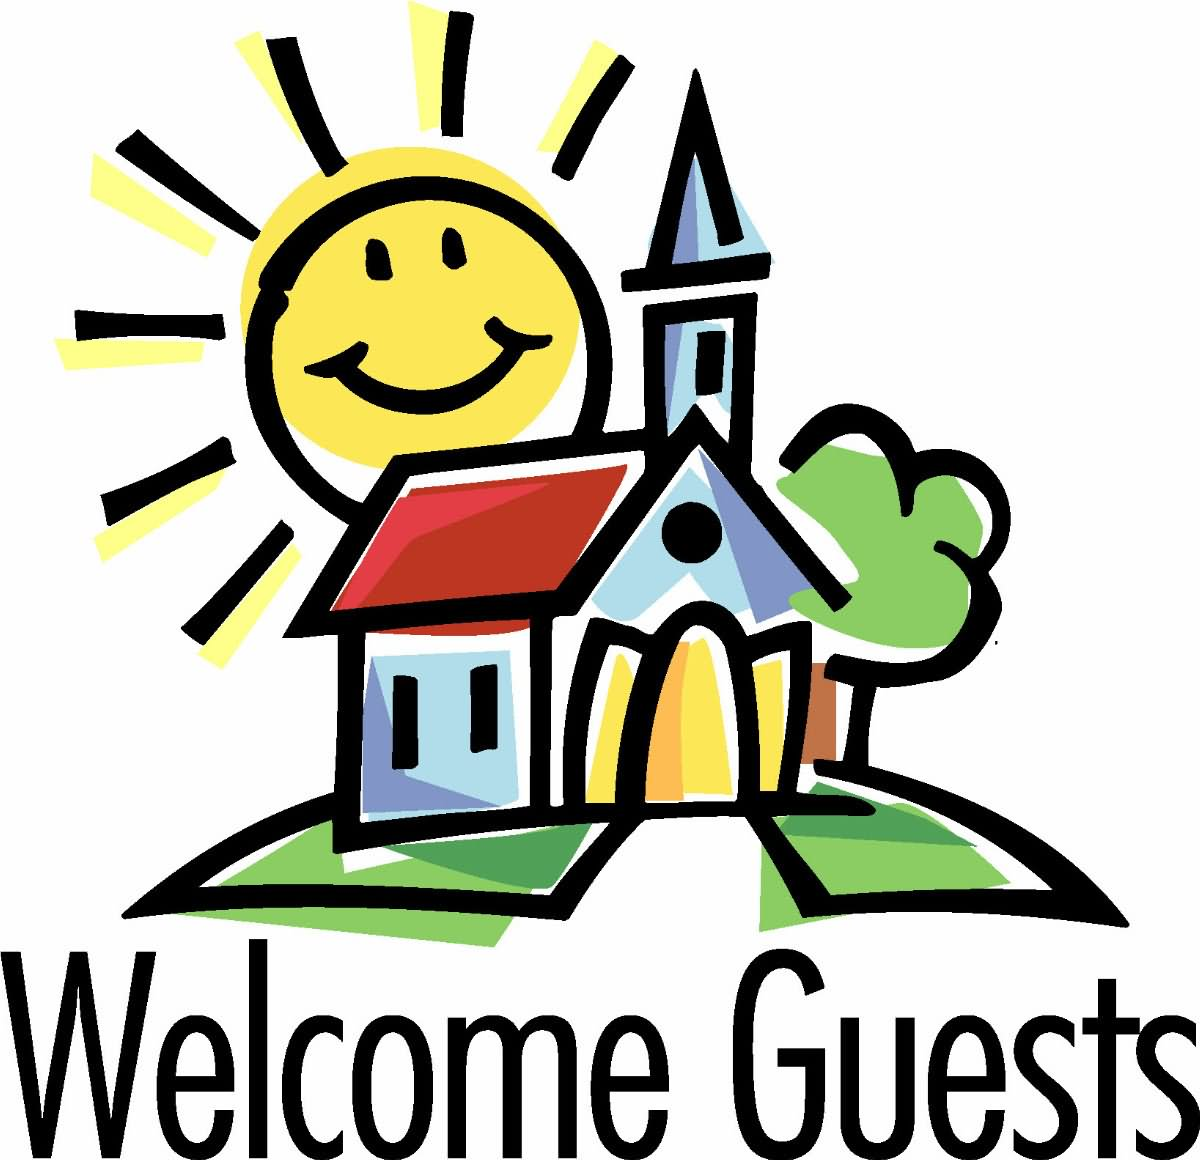 Guests welcome clipart - Clipground